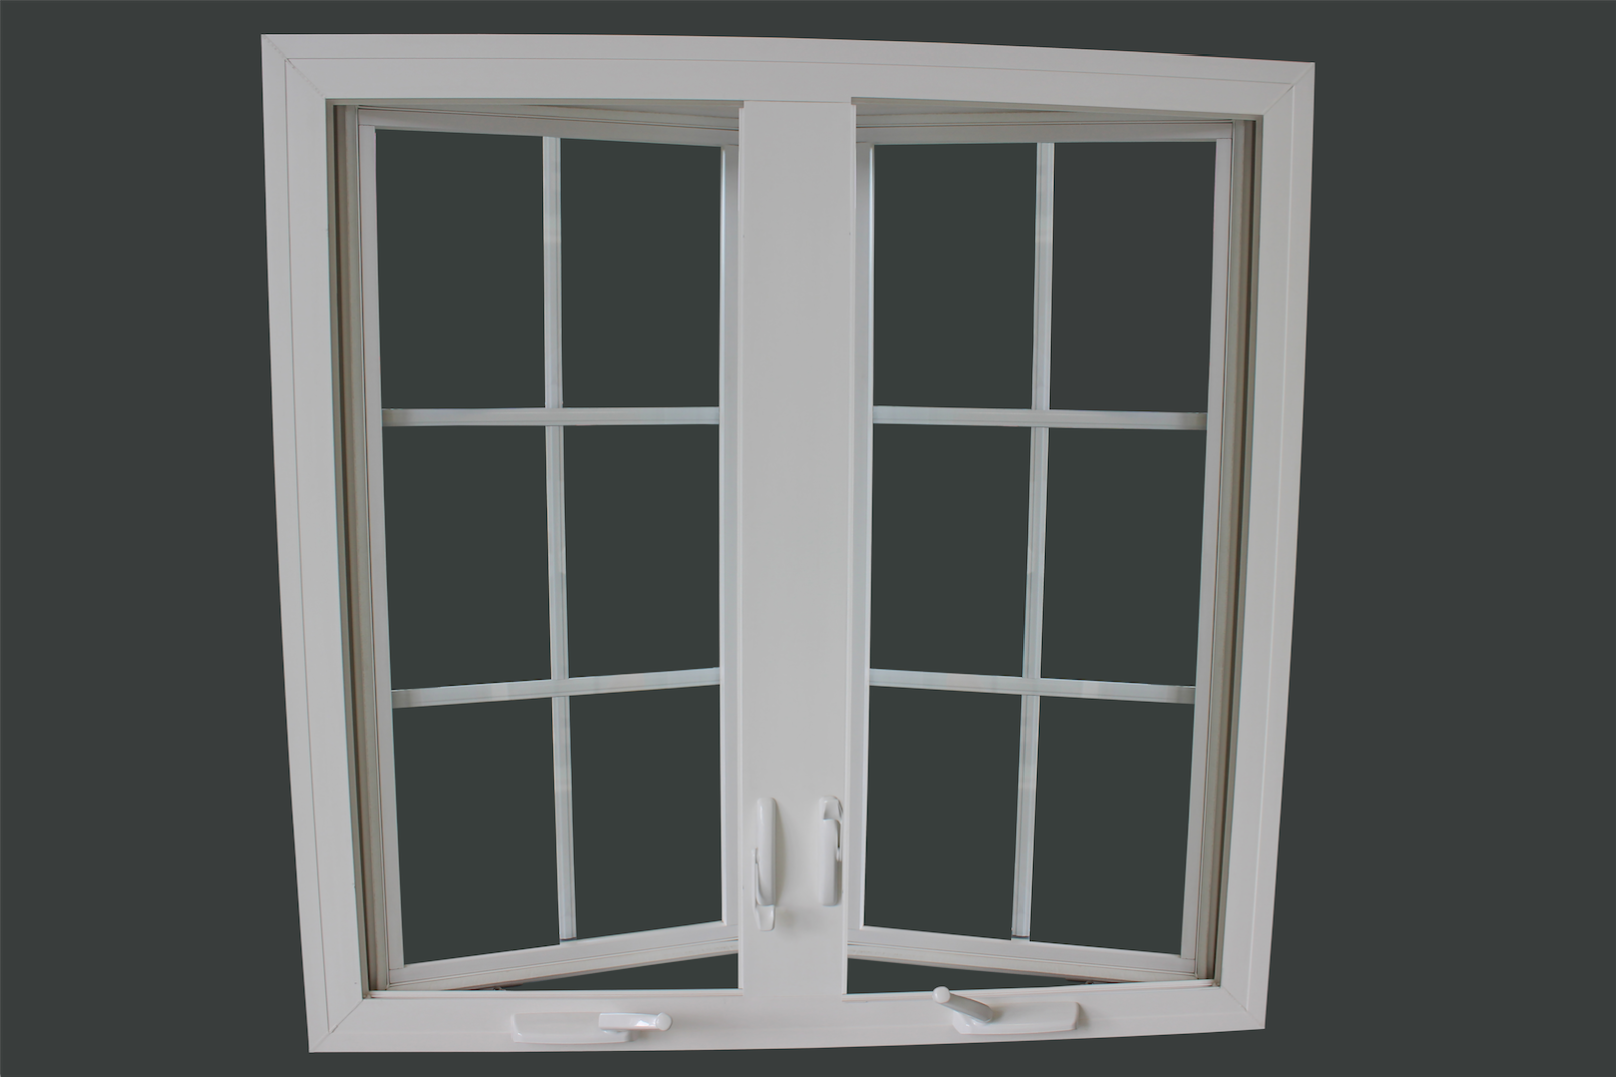 Replacement casement windows specialty wholesale supply for Replacing windows